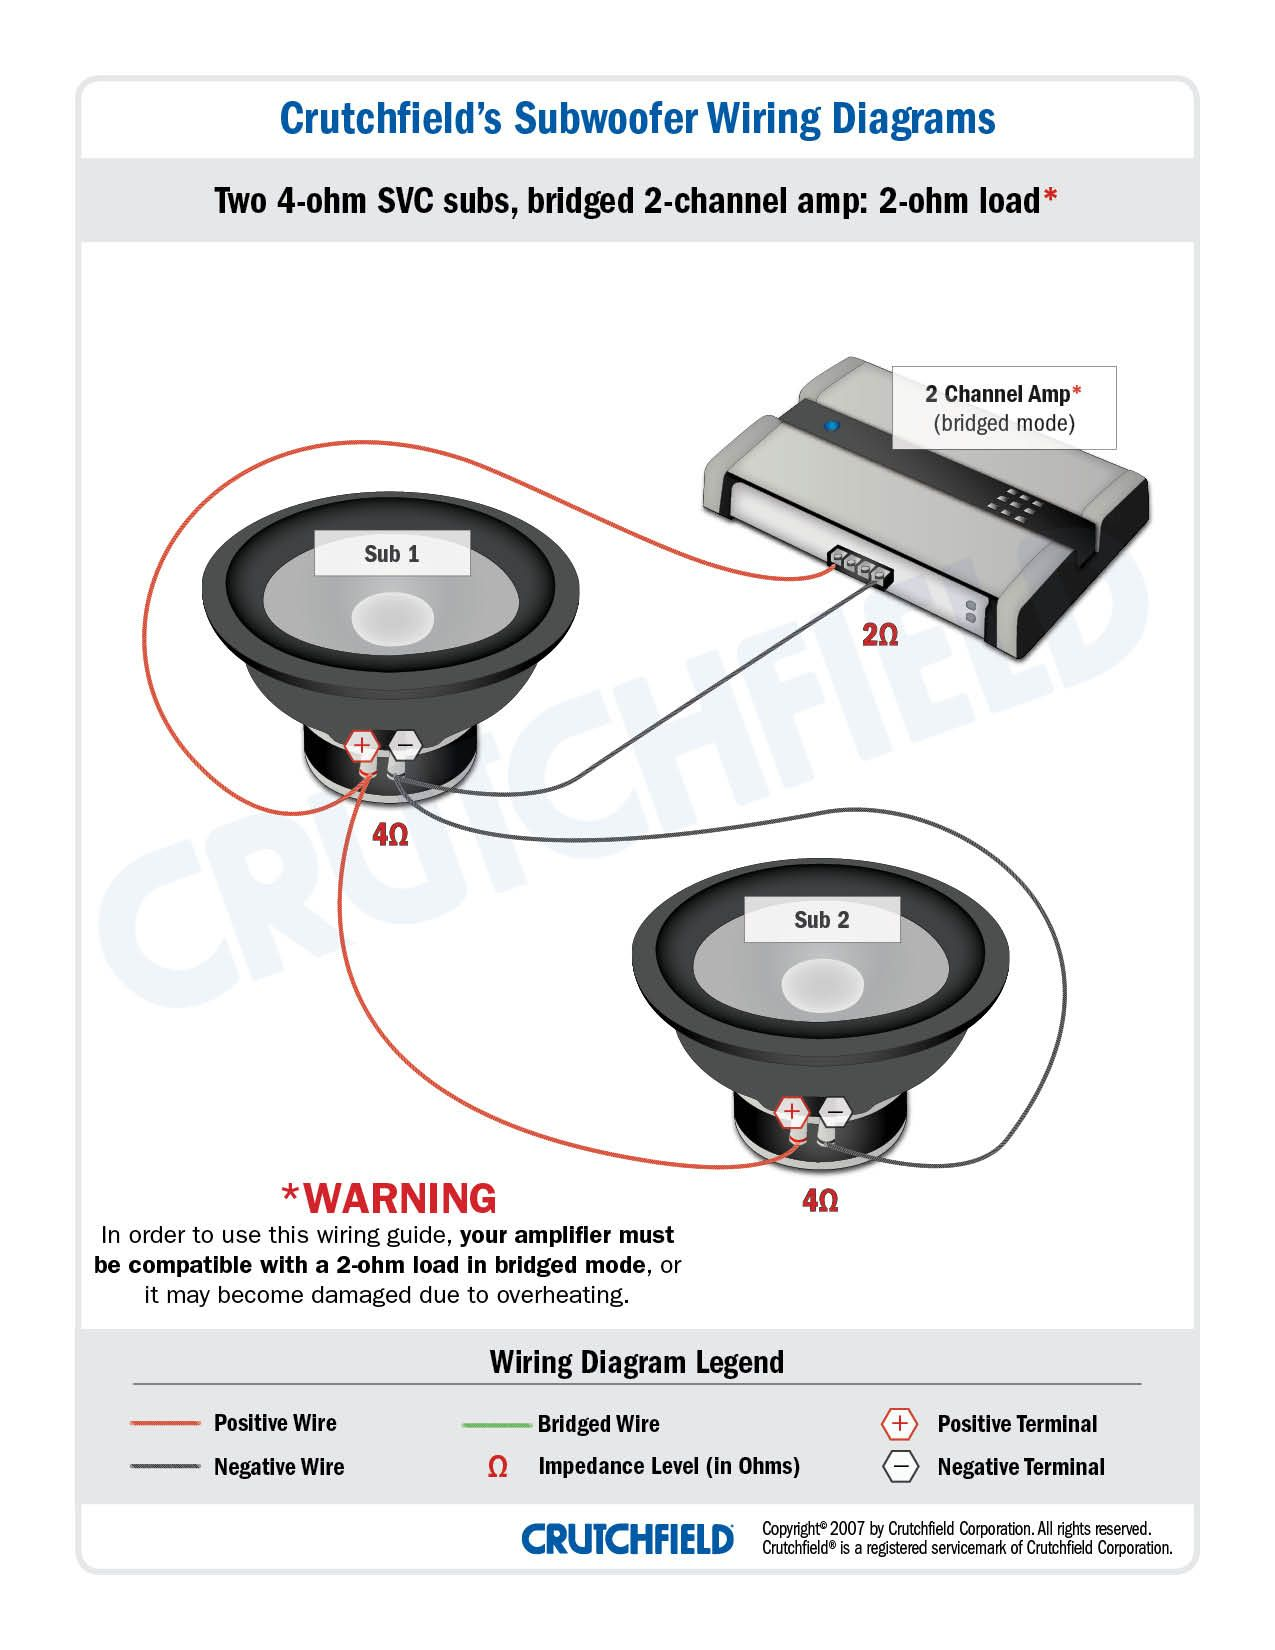 10 inch rockford fosgate sub wiring diagram use wiring diagram rockford fosgate p3001 wiring diagram rockford subwoofer wiring diagram [ 1275 x 1650 Pixel ]